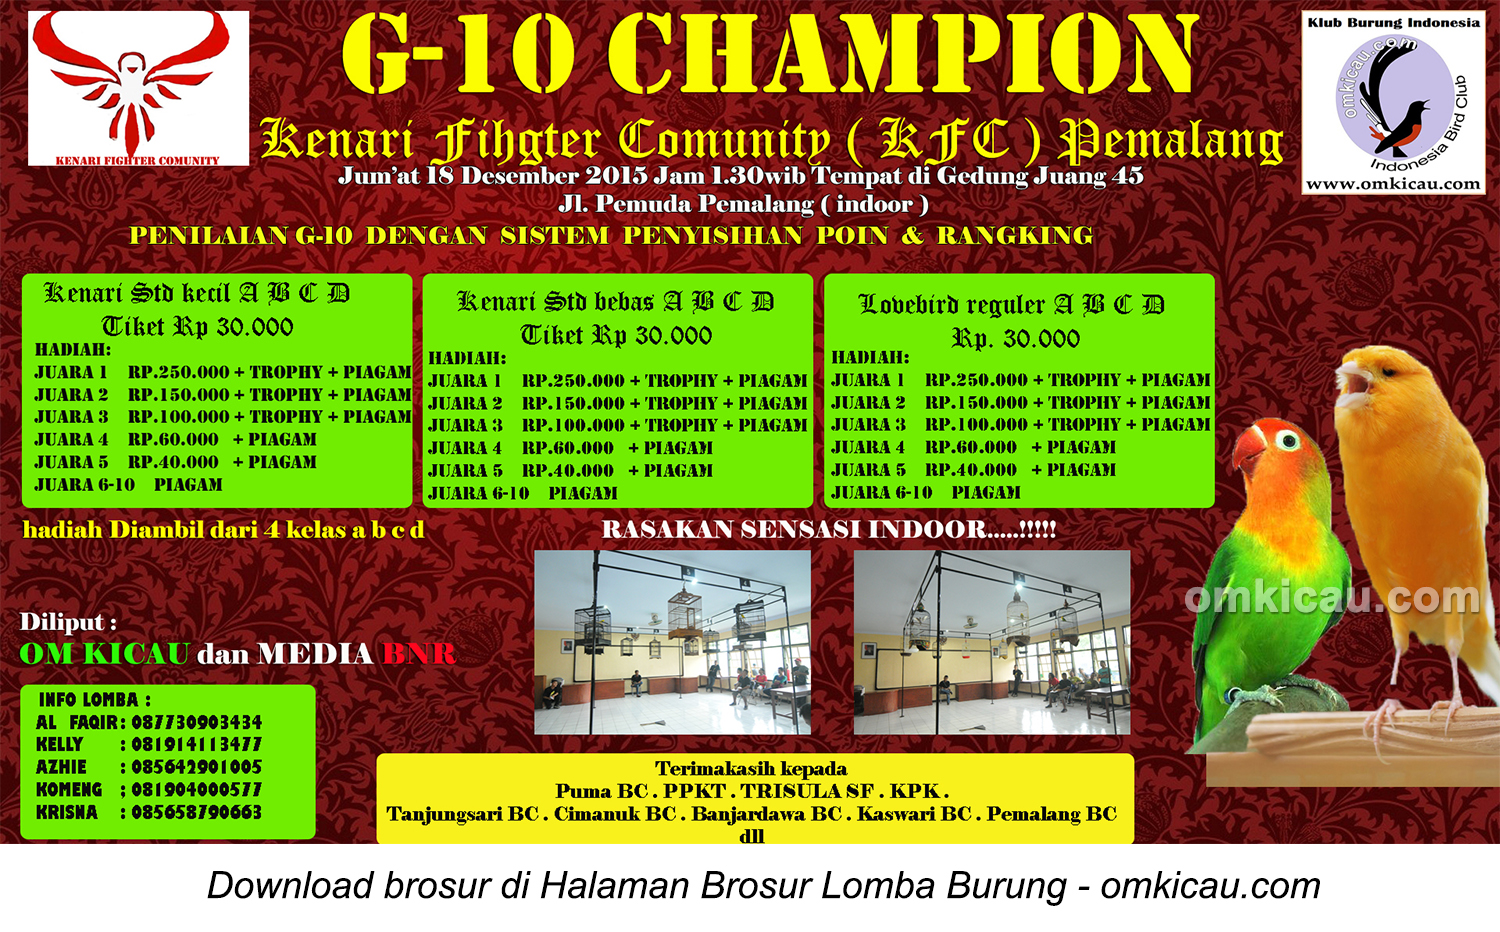 Index Of Wp Content Uploads 2015 12 Sonic 150r Energetic Red Pemalang Brosur Latber Burung Berkicau G 10 Champion Kfc 18 Desember